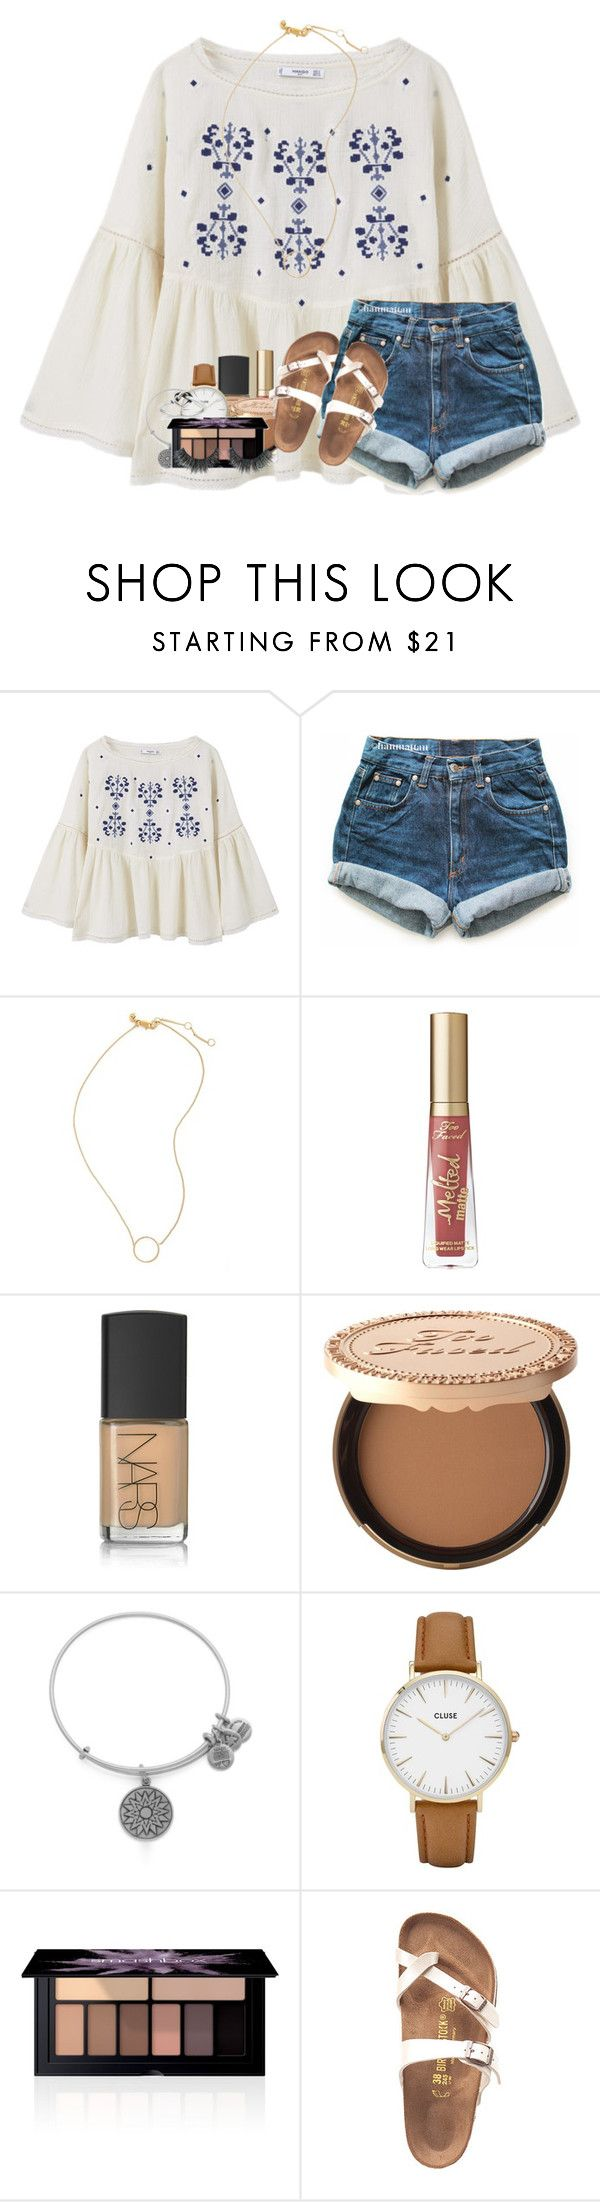 """""""what do u get guys for valentine's day?"""" by kyliegrace ❤ liked on Polyvore featuring beauty, MANGO, Levi's, Madewell, Too Faced Cosmetics, NARS Cosmetics, Alex and Ani, CLUSE, Smashbox and Birkenstock"""